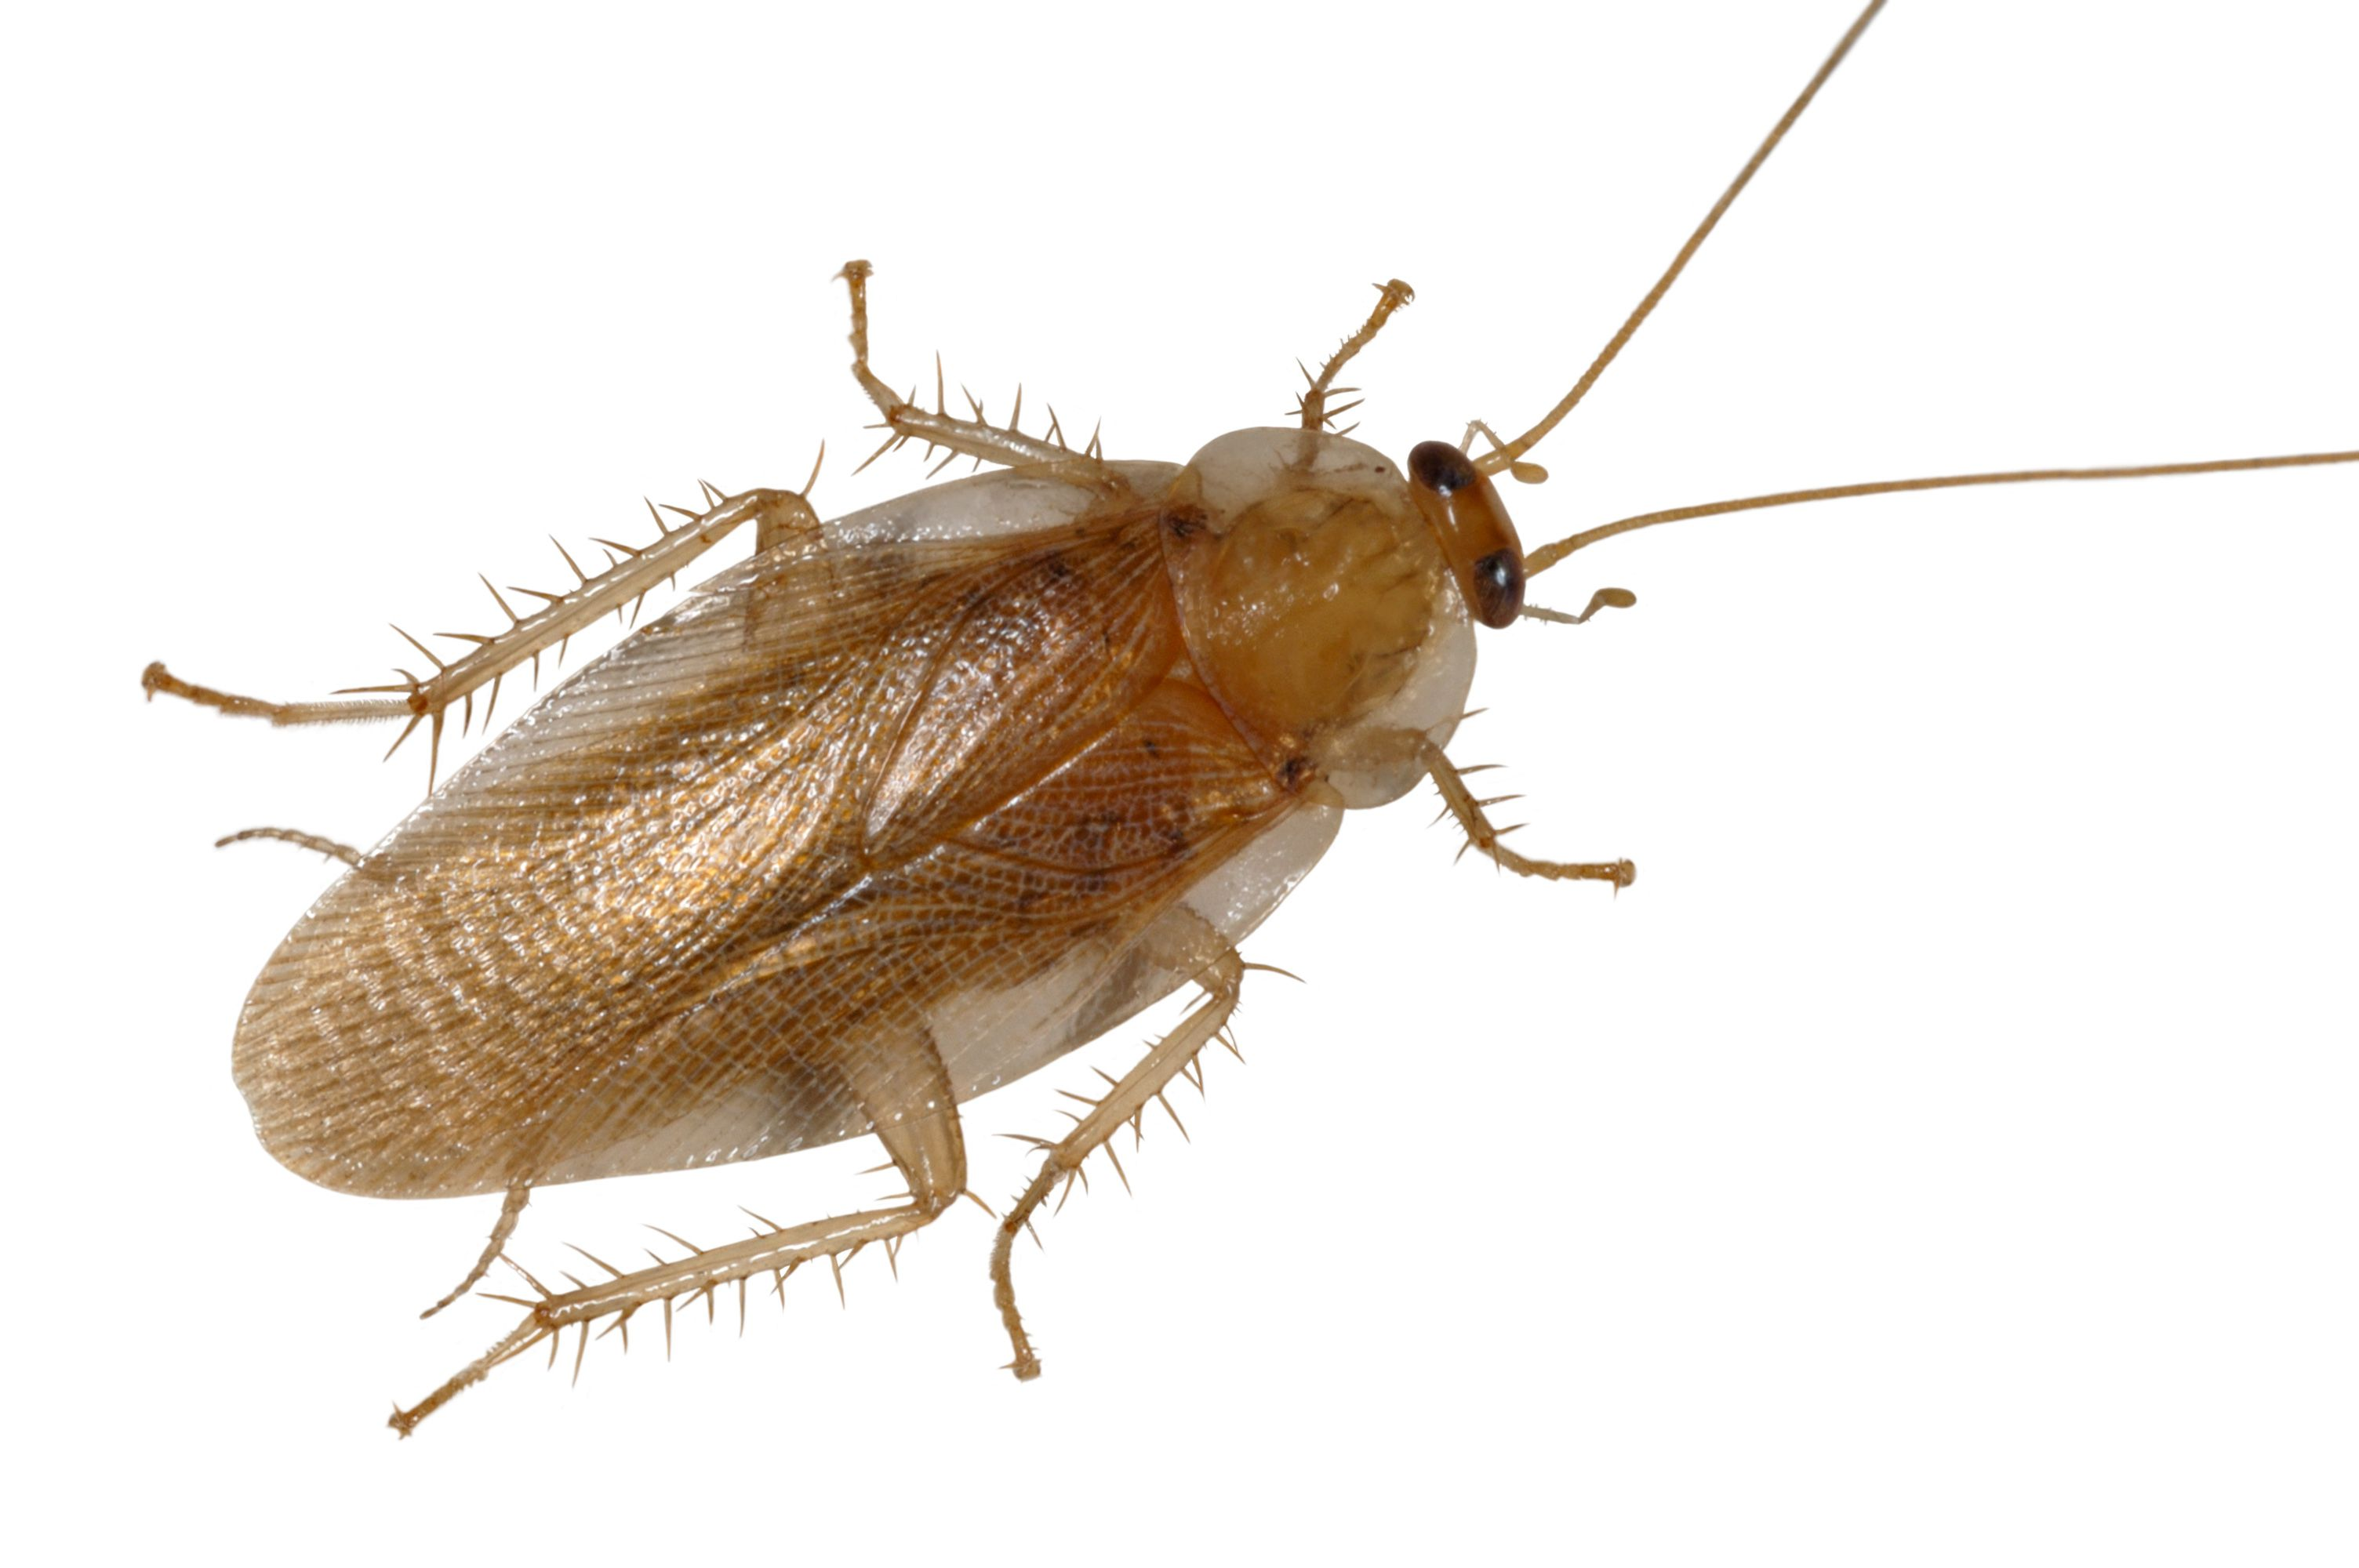 10 Fascinating Facts About Cockroaches